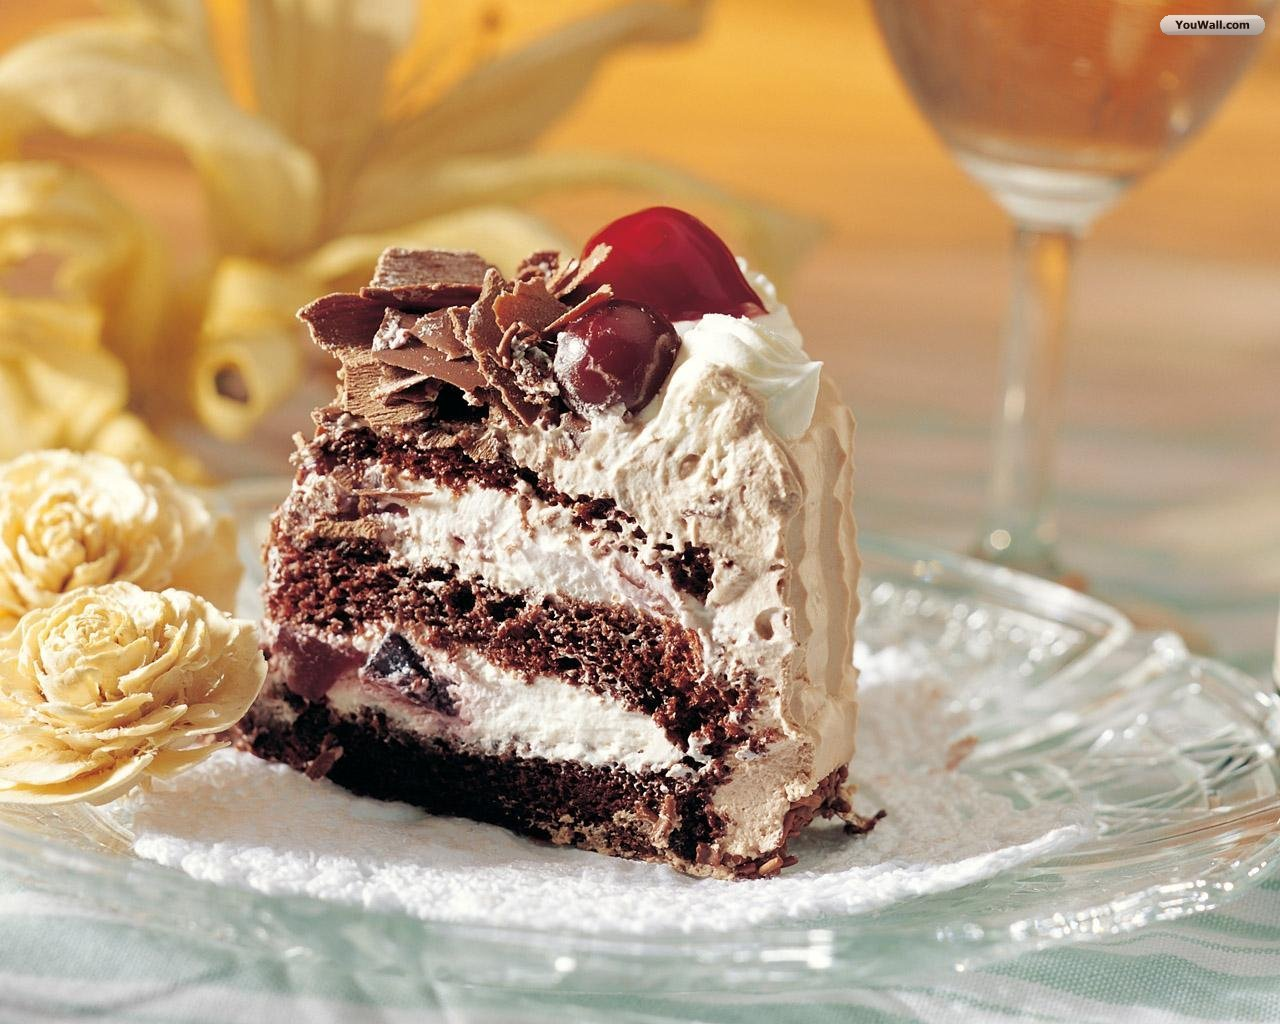 Chocolate Cake Wallpaper - WallpaperSafari